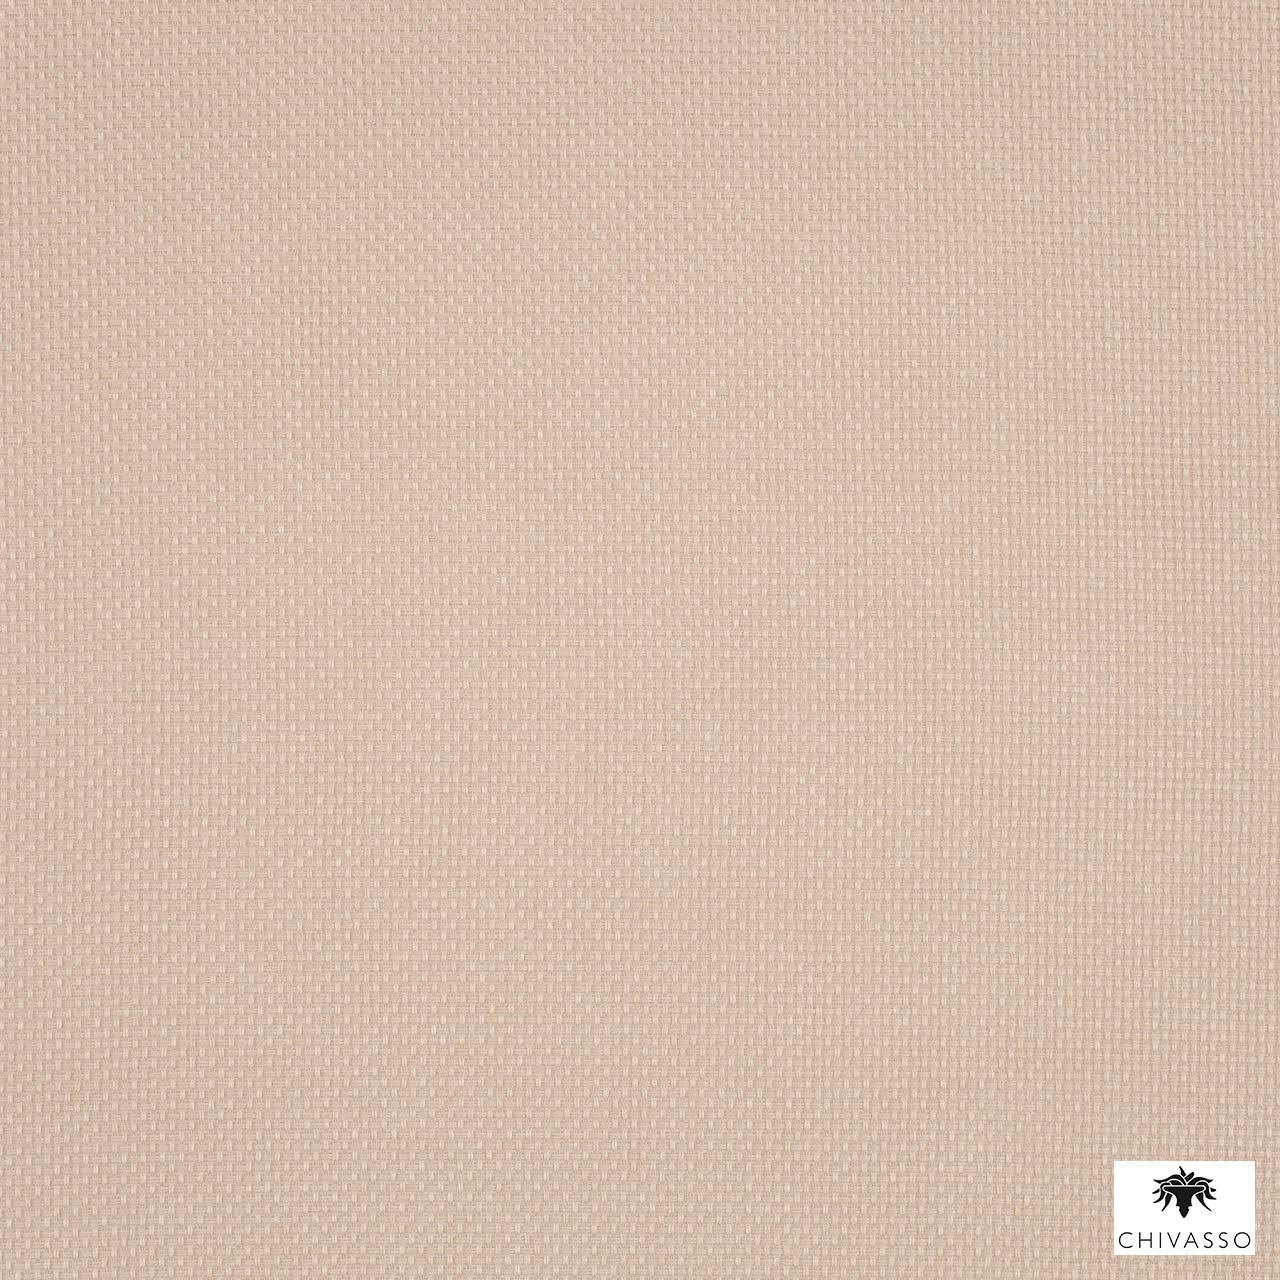 Chivasso - Twinkle - Ch2740-074  | Curtain Fabric - Beige, Plain, Synthetic, Domestic Use, Railroaded, Wide Width